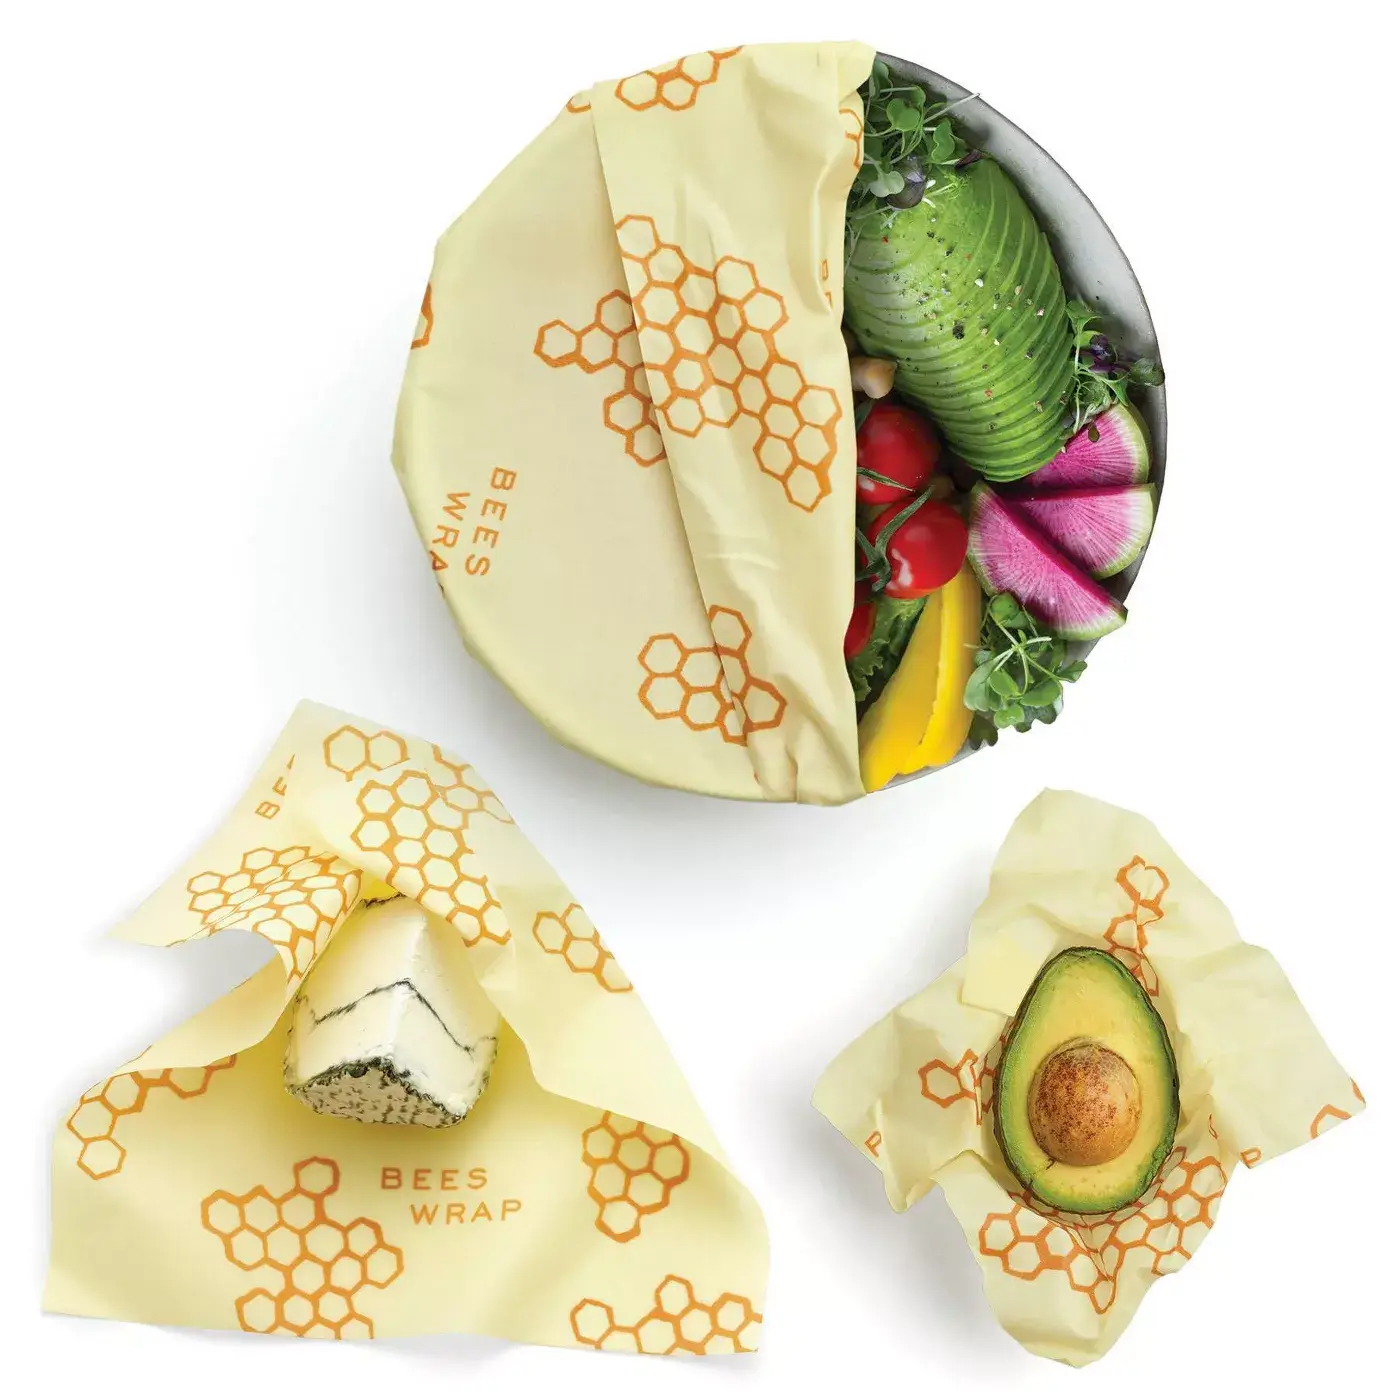 Bee's Wrap Sustainable Food Storage Wrap - GreenHive Collective